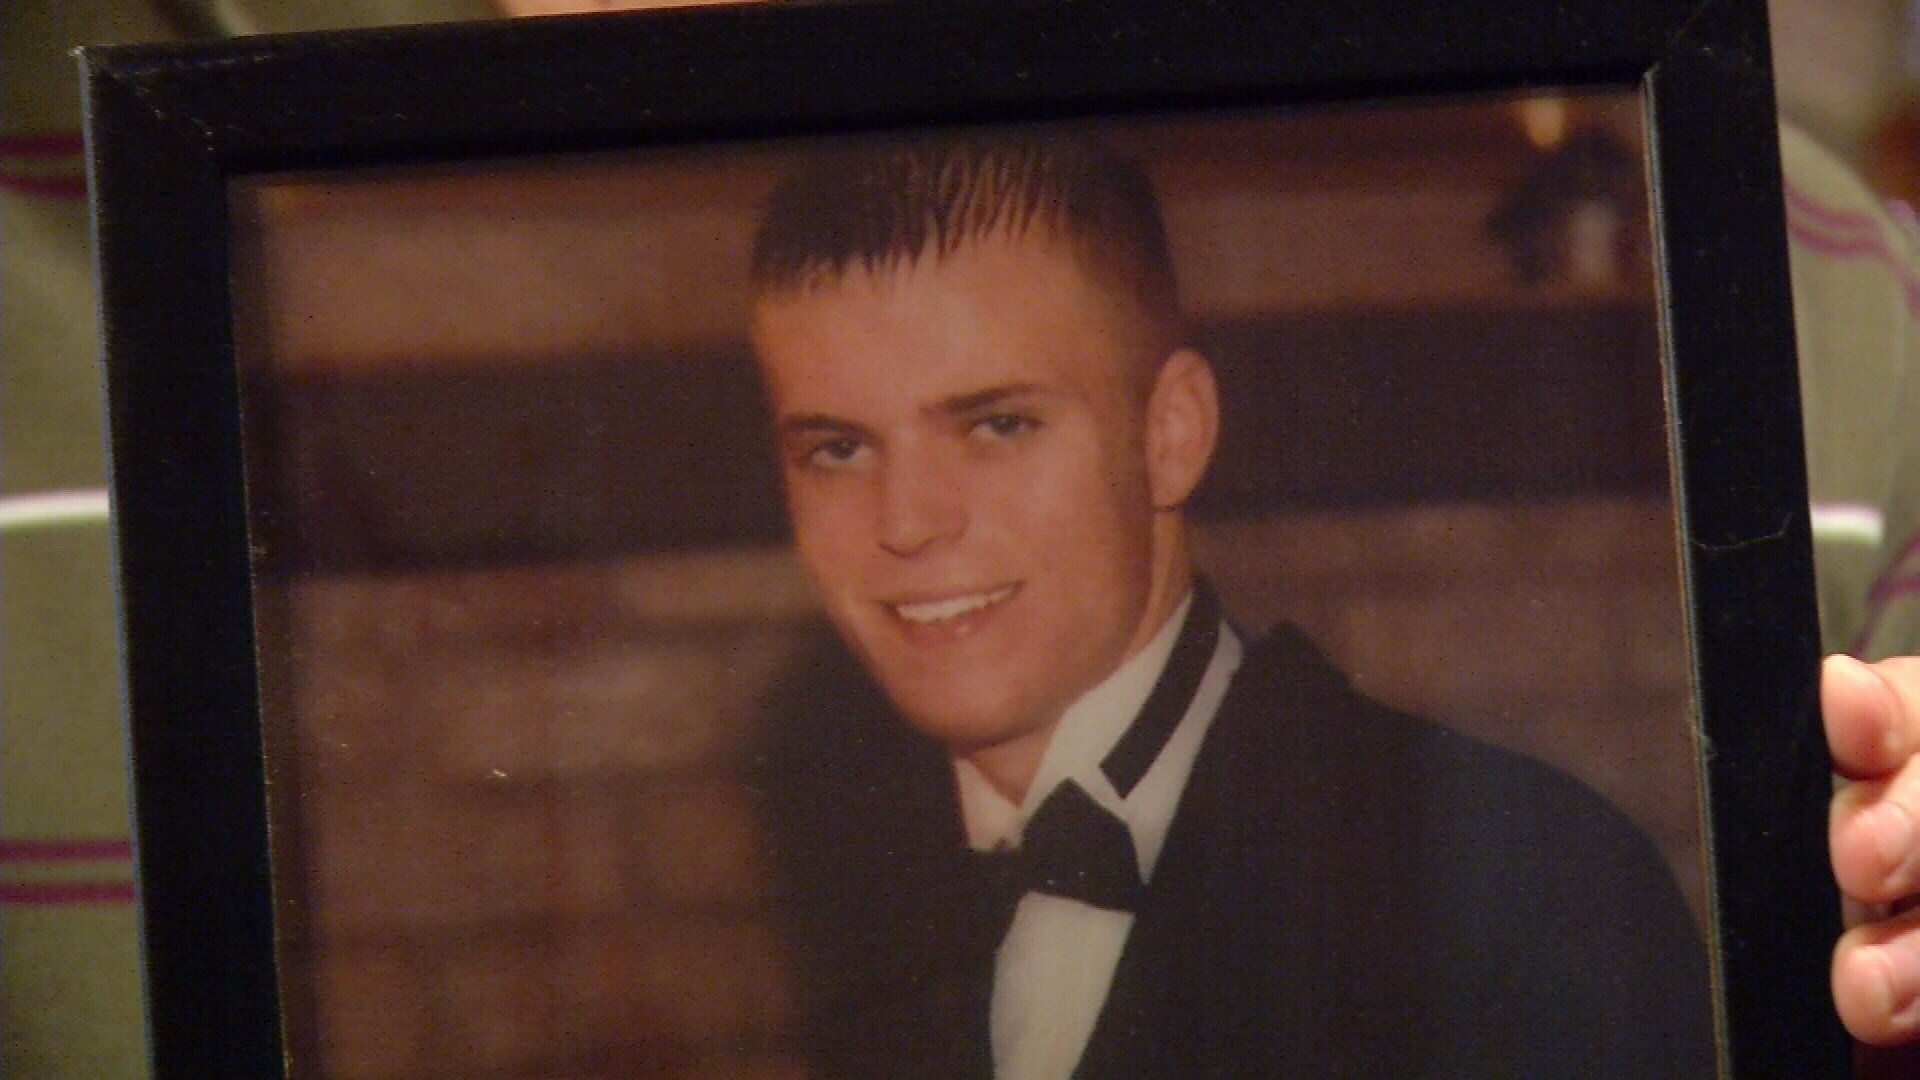 High school seniors Steven Jackson (pictured here) and Charles Avalos were killed in a car crash on I-37 when they were returning from a camping trip in 2000.